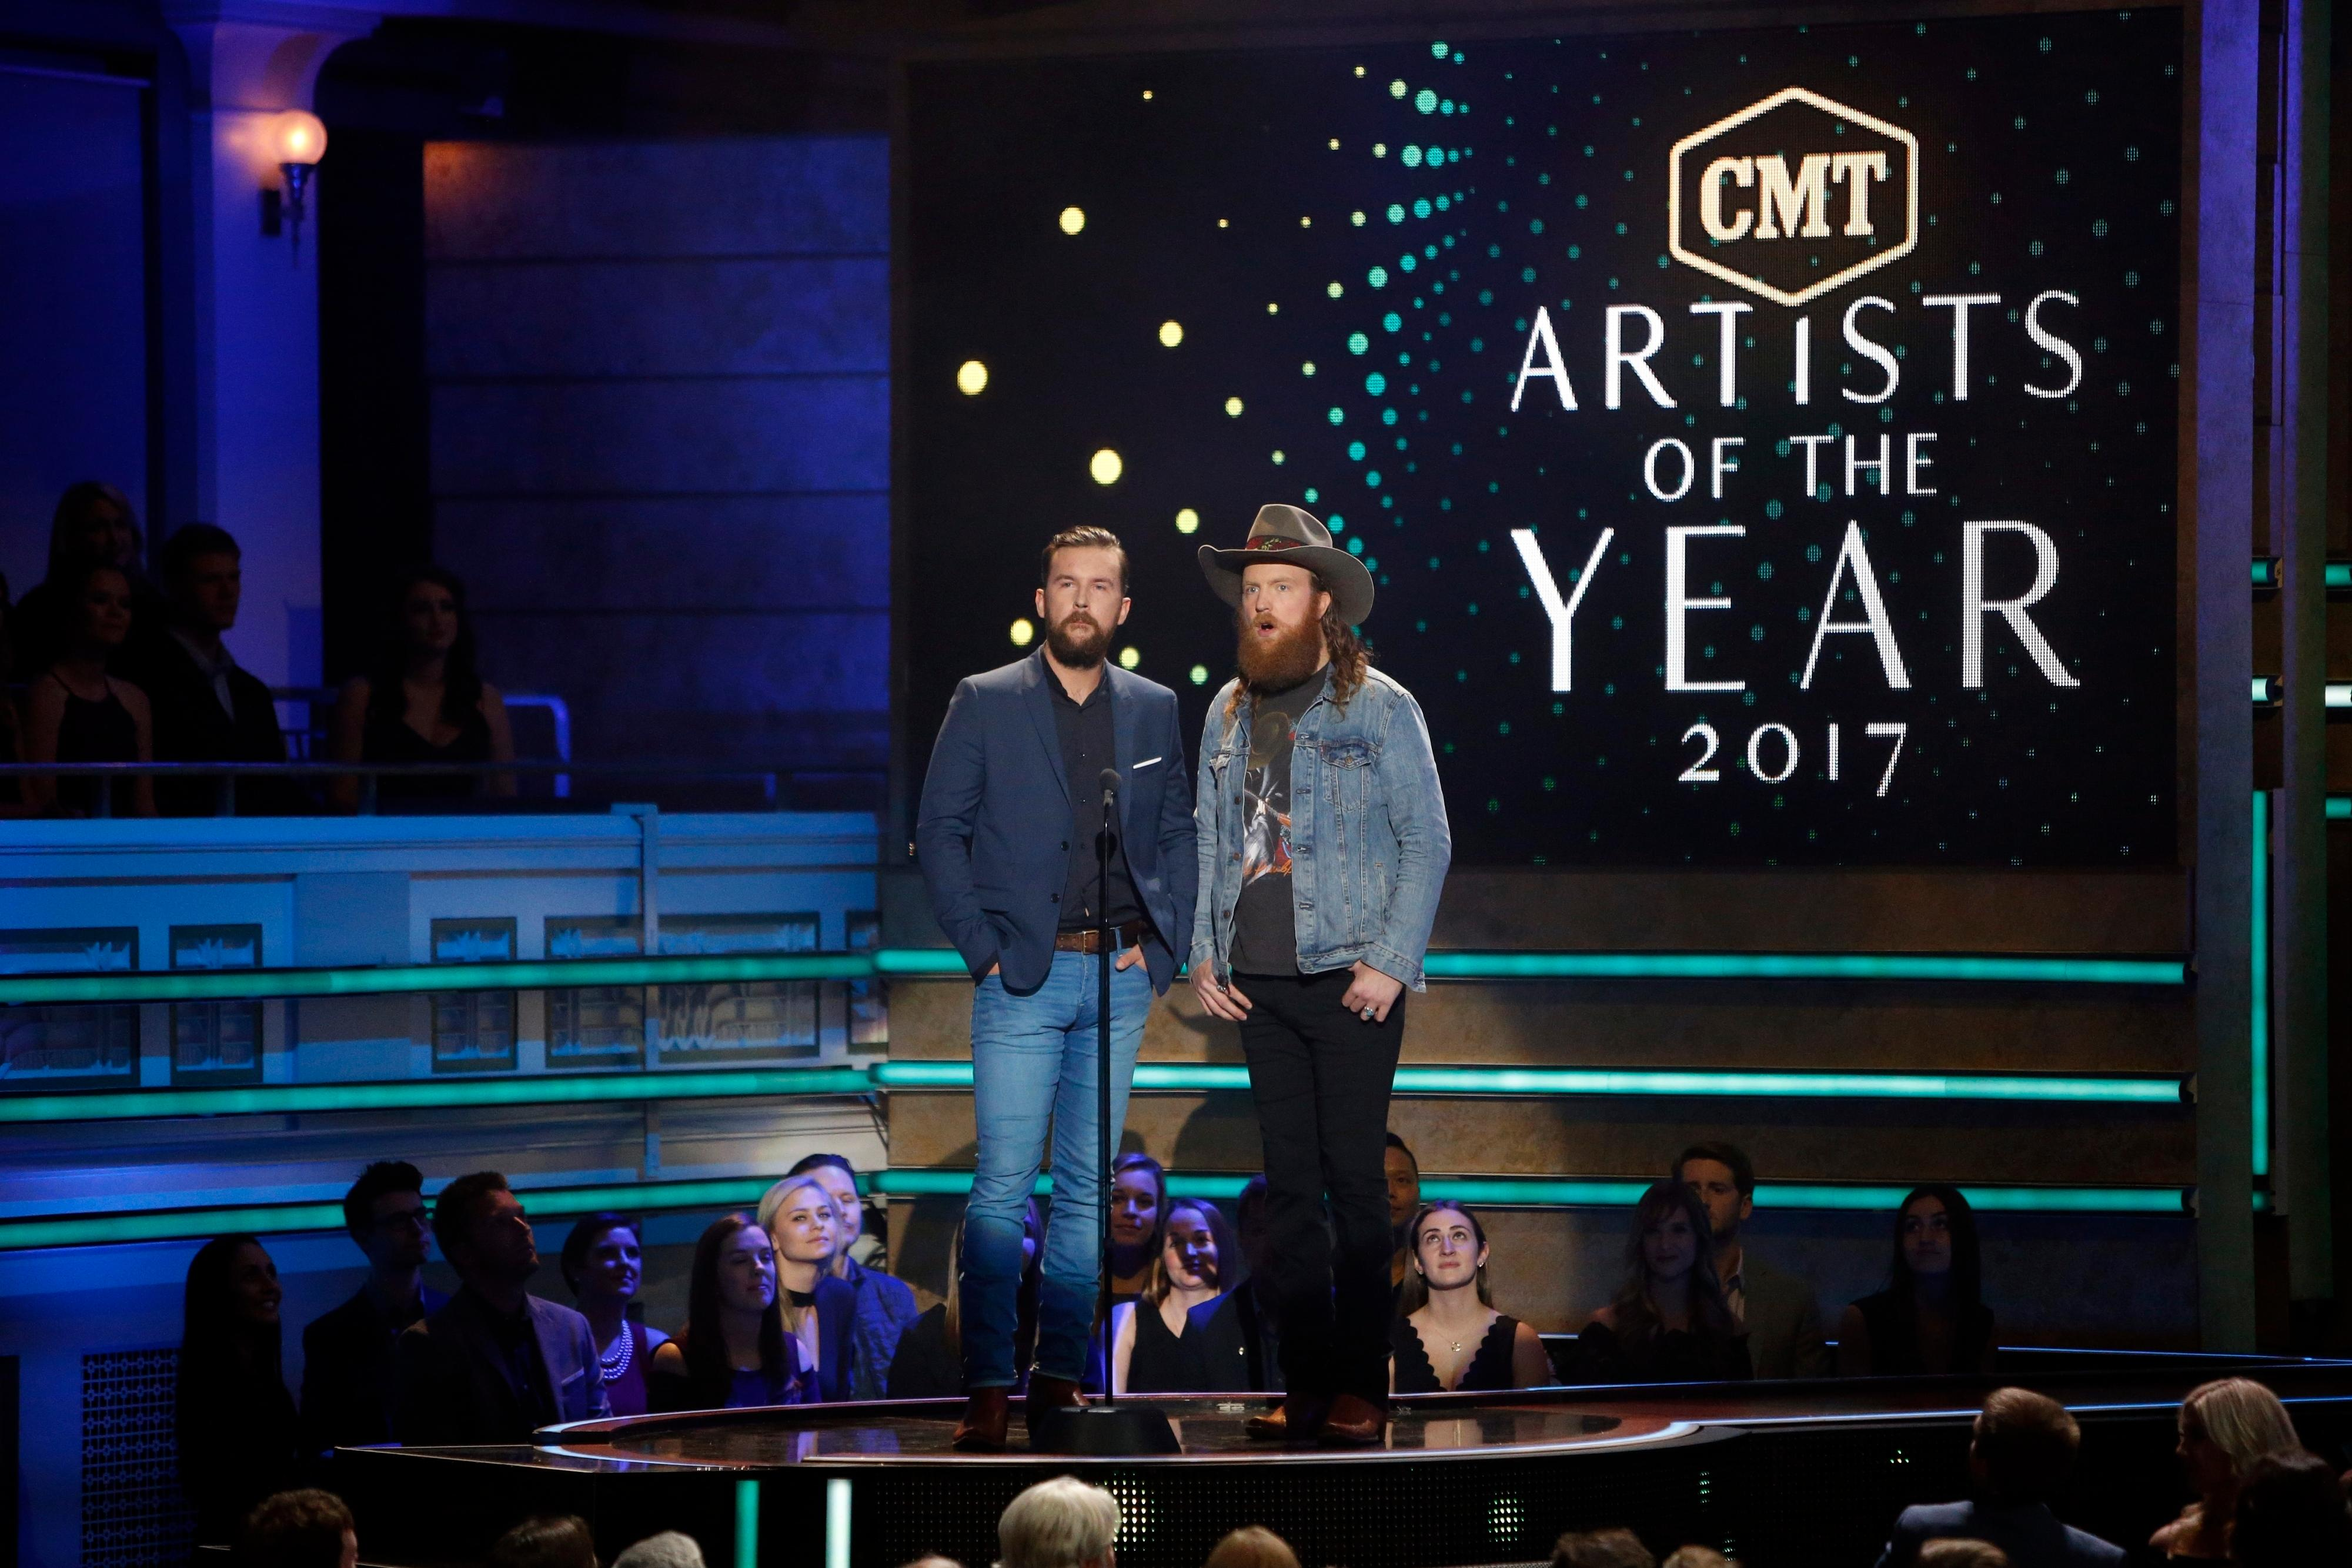 Brothers Osborne, John Osborne T.J. Osborne are seen at 2017 CMT Artist of the Year Awards at Nashville's Schermerhorn Symphony Center on Wednesday, Oct. 18, 2017, in Nashville, Tenn. (Photo by Wade Payne/Invision/AP)